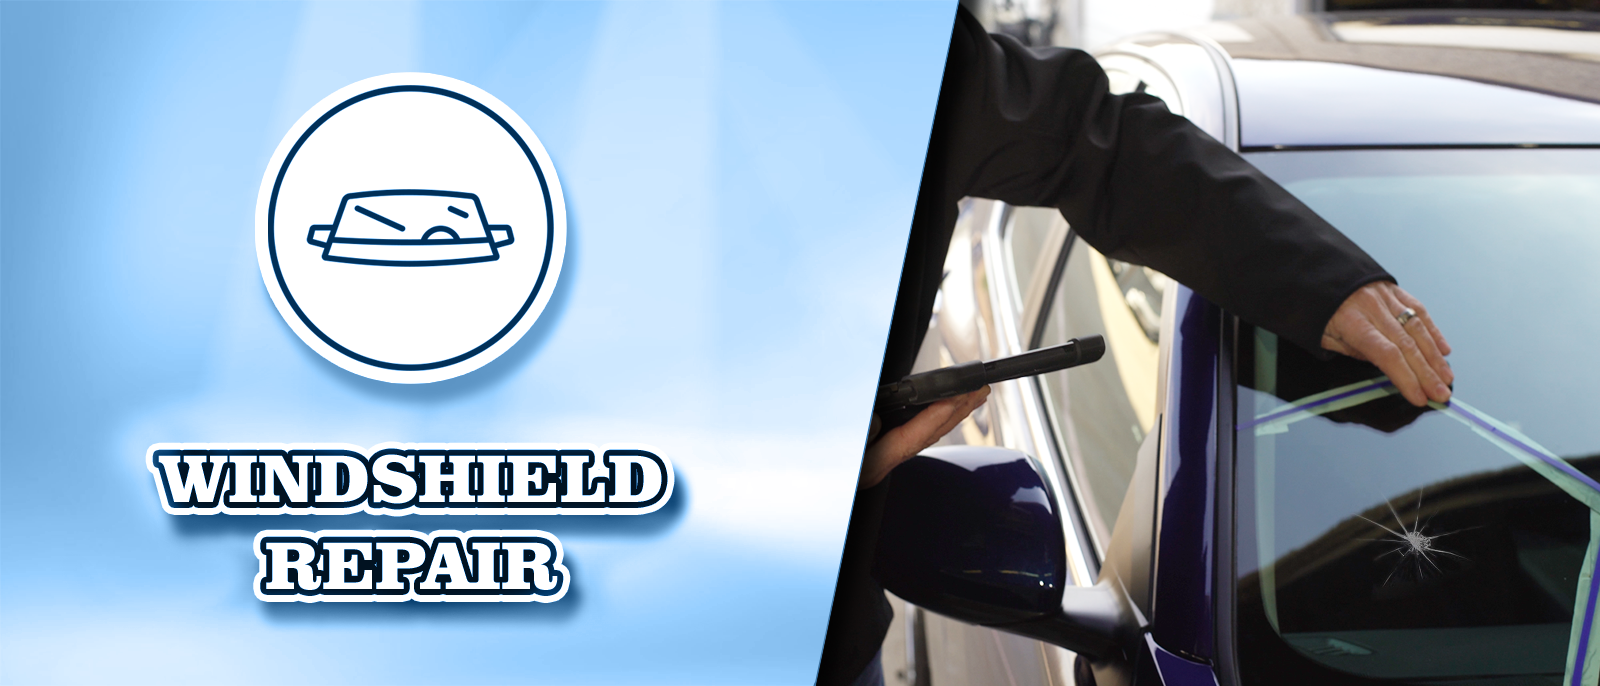 windshield repair at Clay Cooley Hyundai of Rockwall